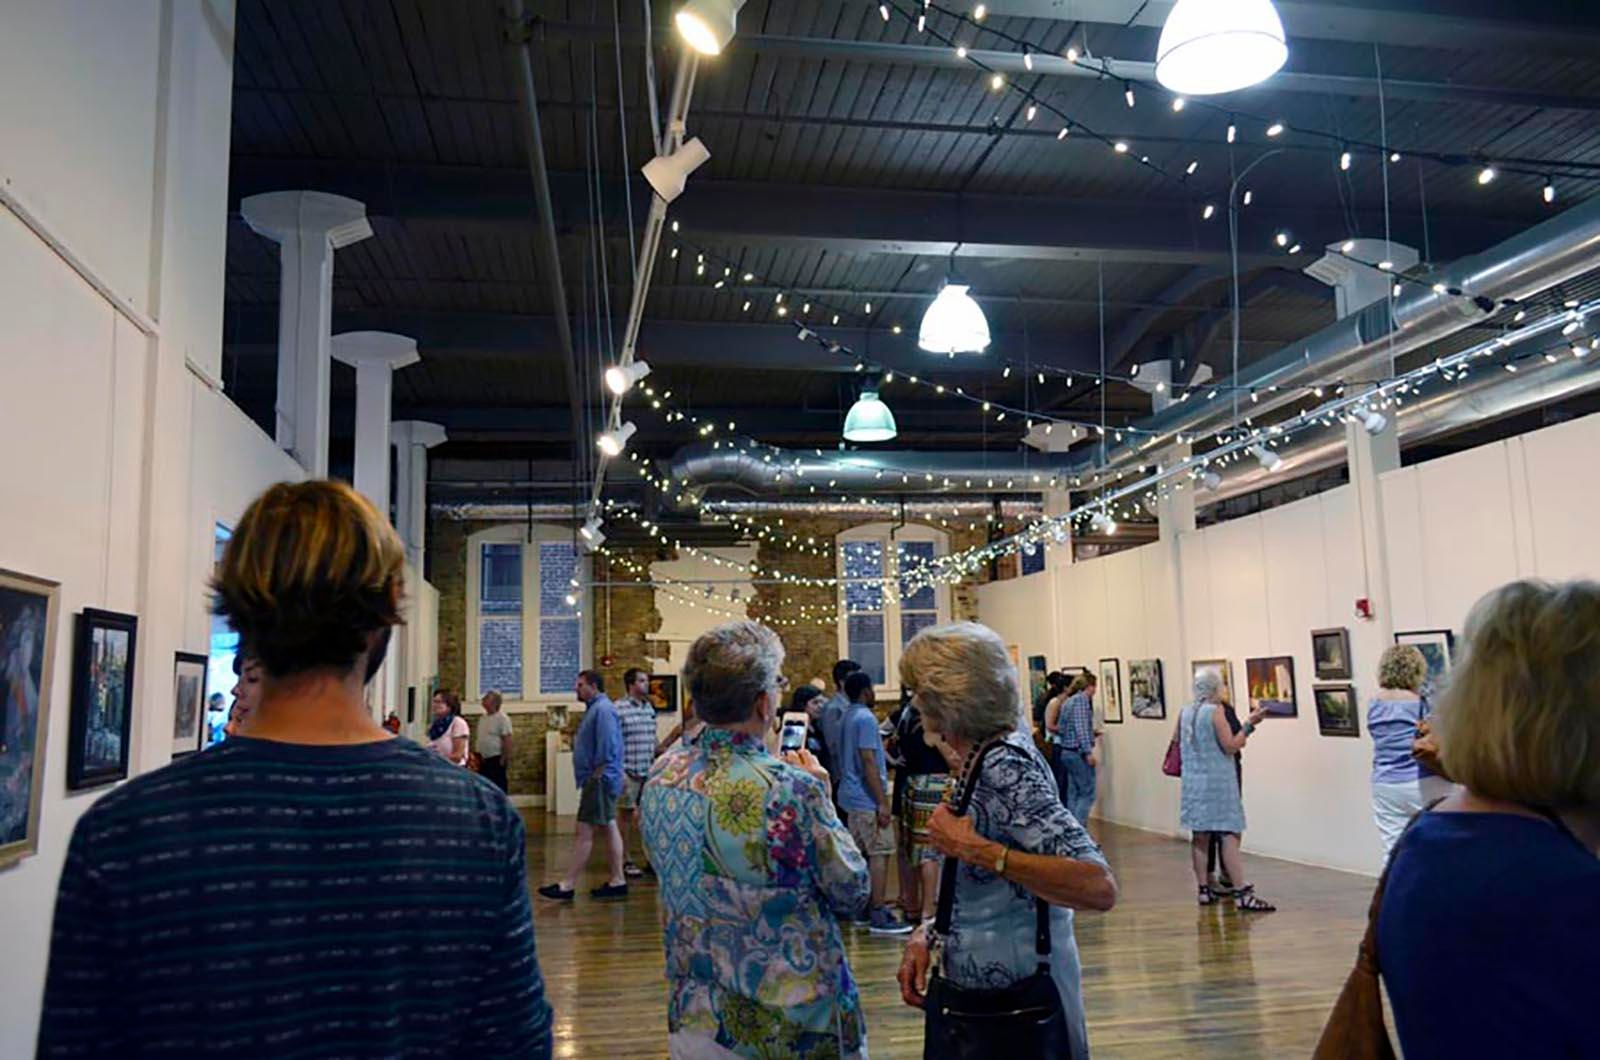 First Friday Art Openings